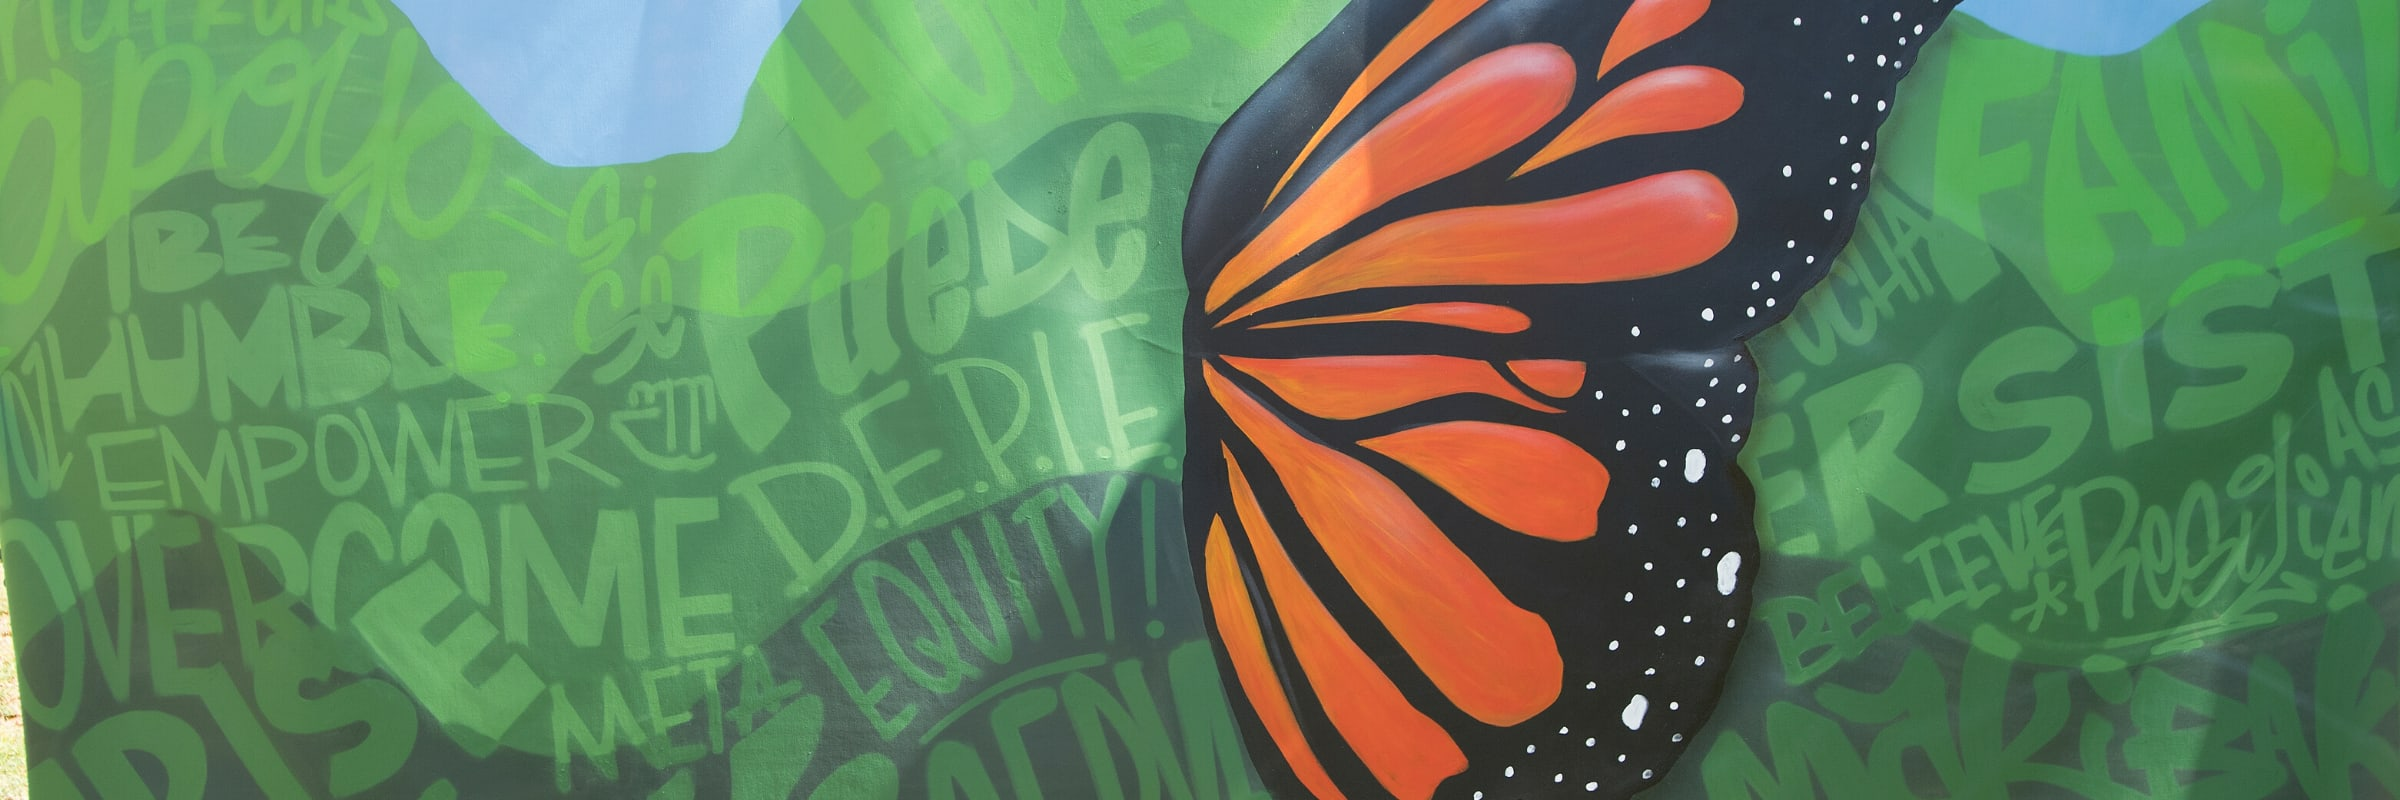 Undocumented Students Mural